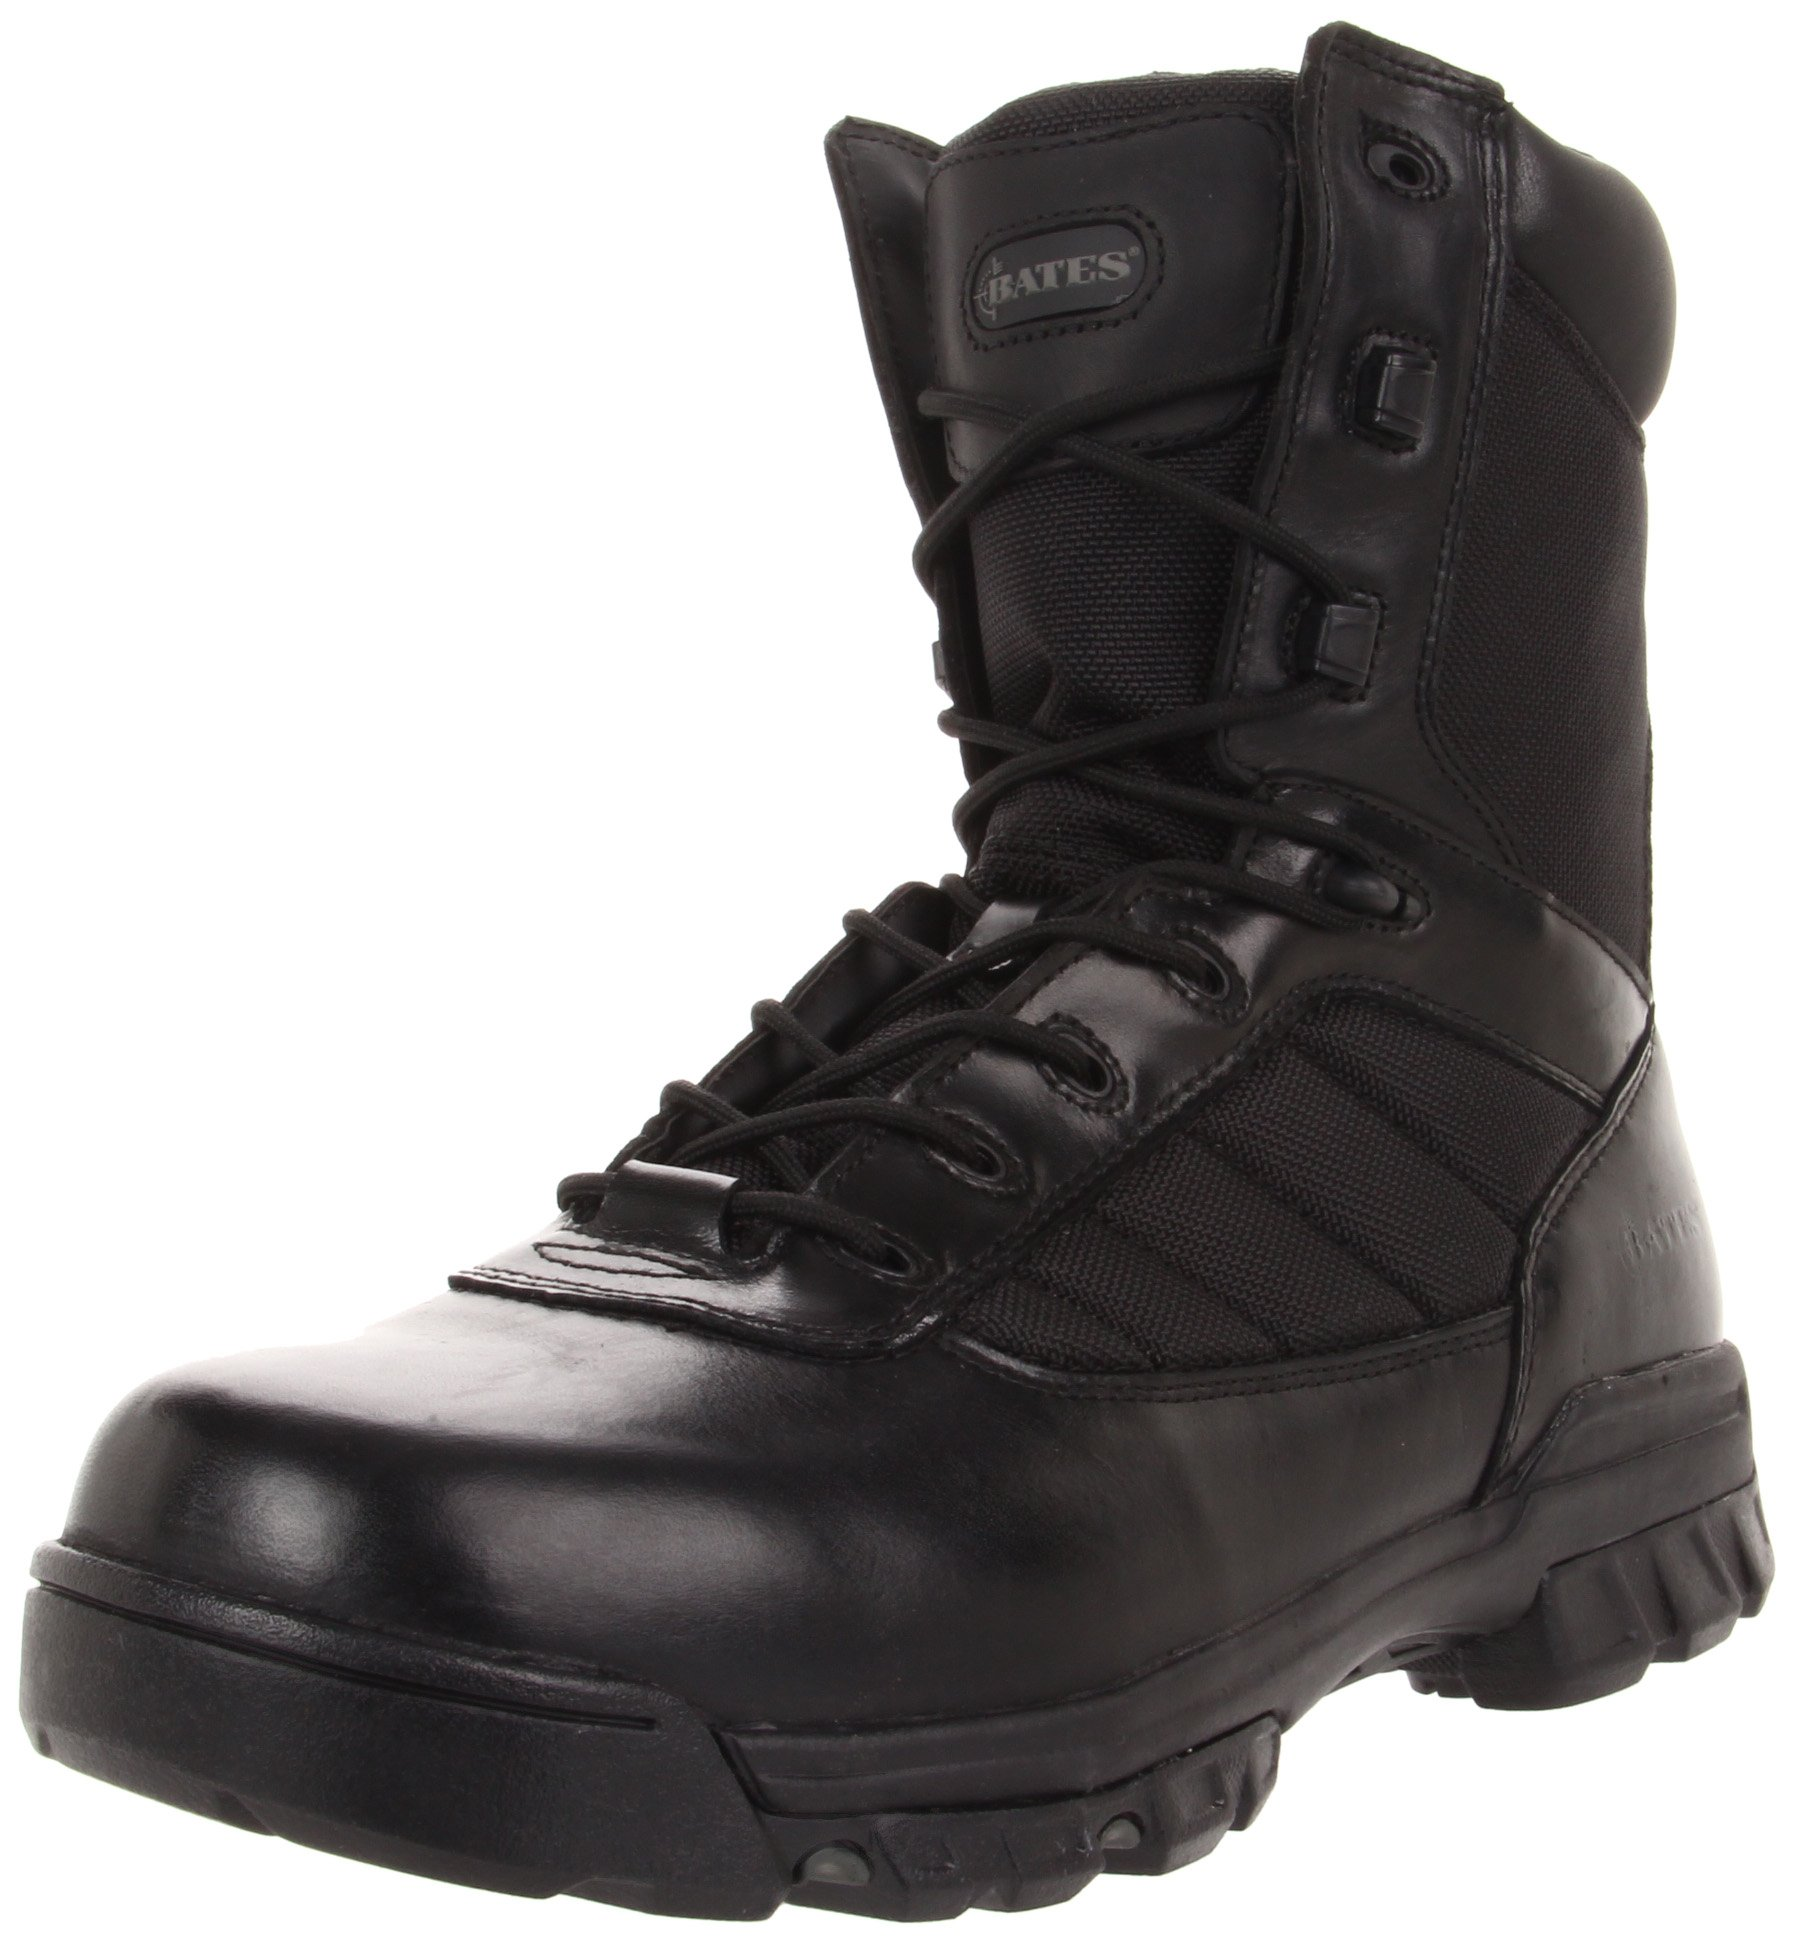 Bates Men's Ultra-Lites 8 Inches Tactical Sport Side Zip Work Boot,Black,10 M US by Bates